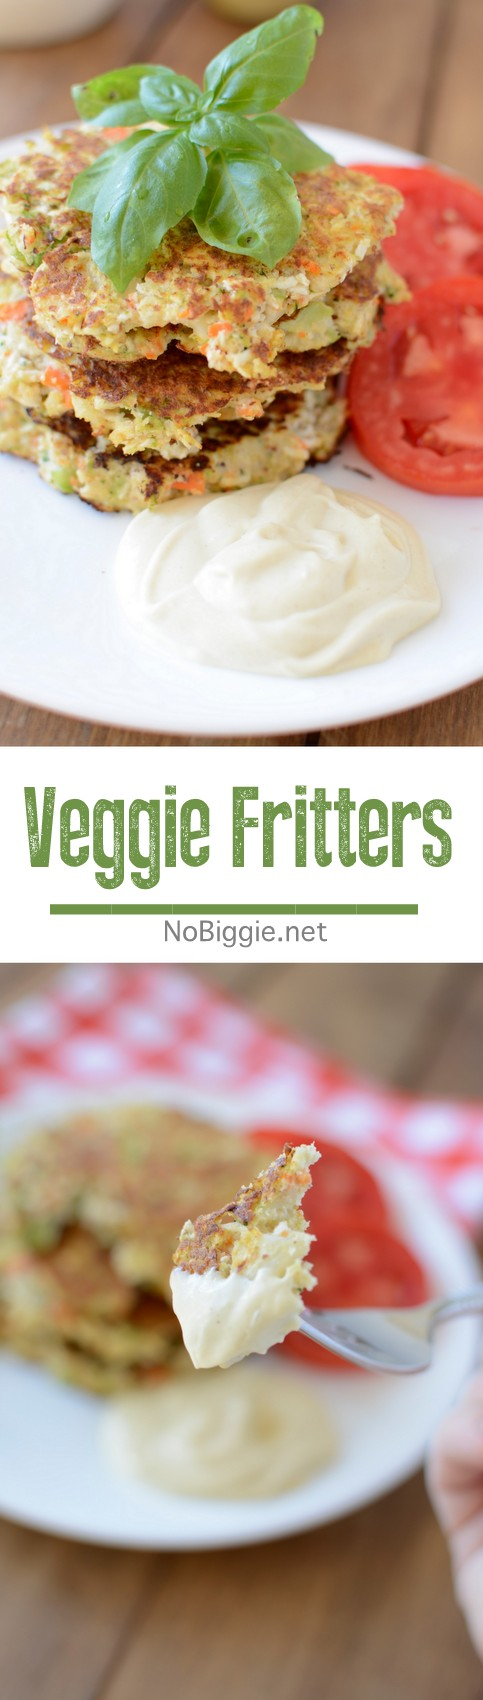 Veggie Fritters - the perfect way to use up the not so pretty ends of broccoli, cauliflower and carrots. #Veggies #veggiefritters #fritters #vegetables #broccoli #carrots #cauliflower